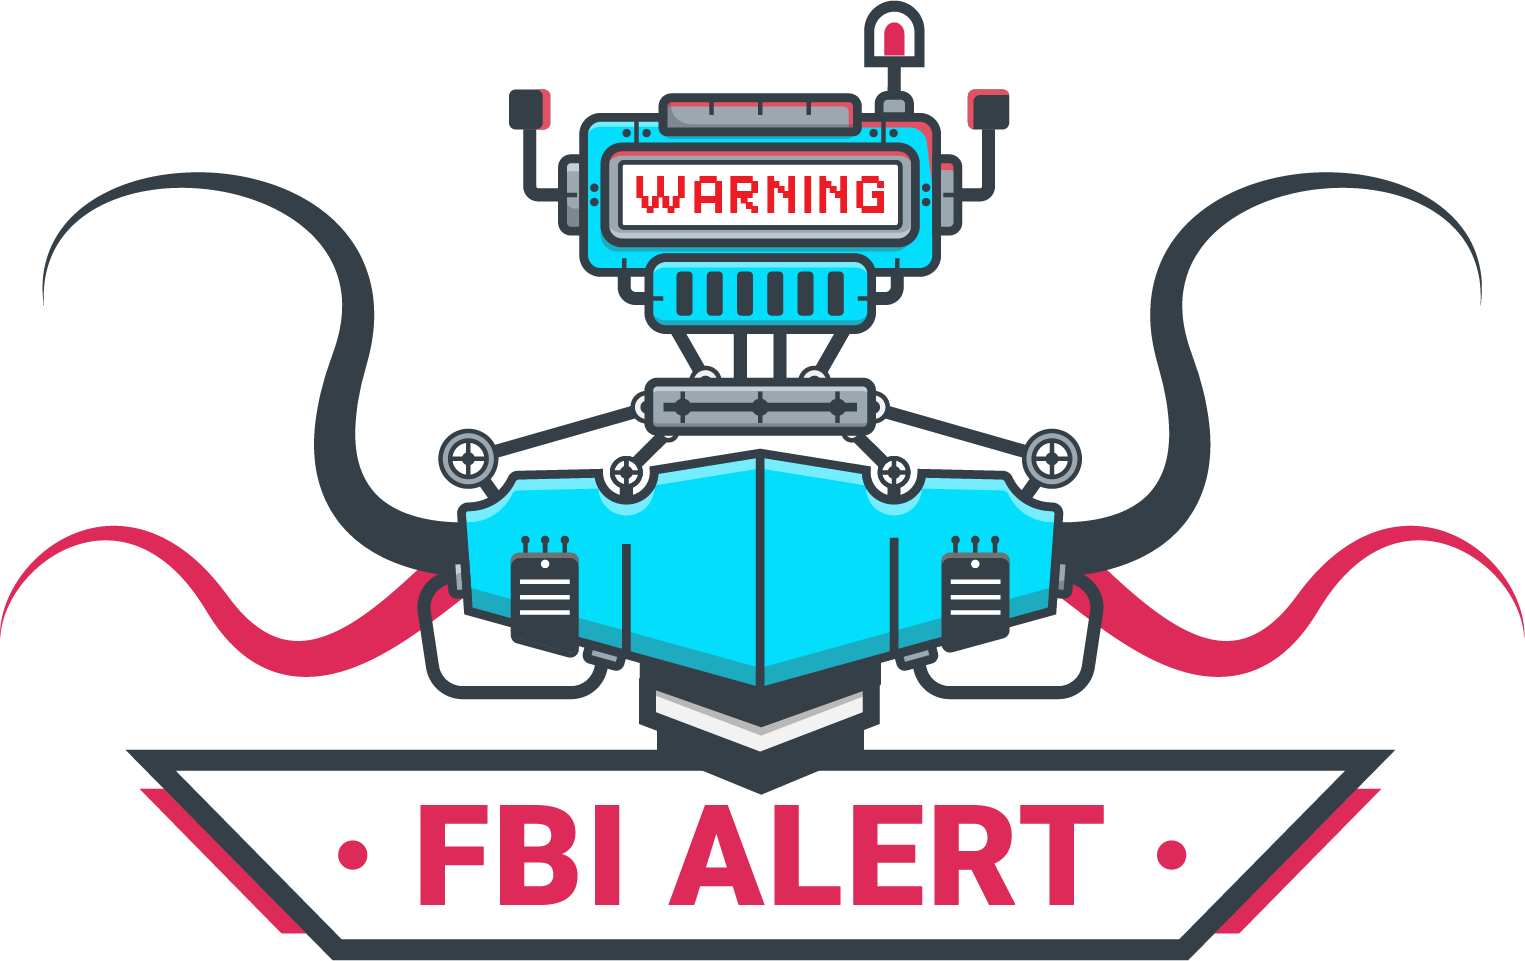 Massive Malware Wave Reported by FBI